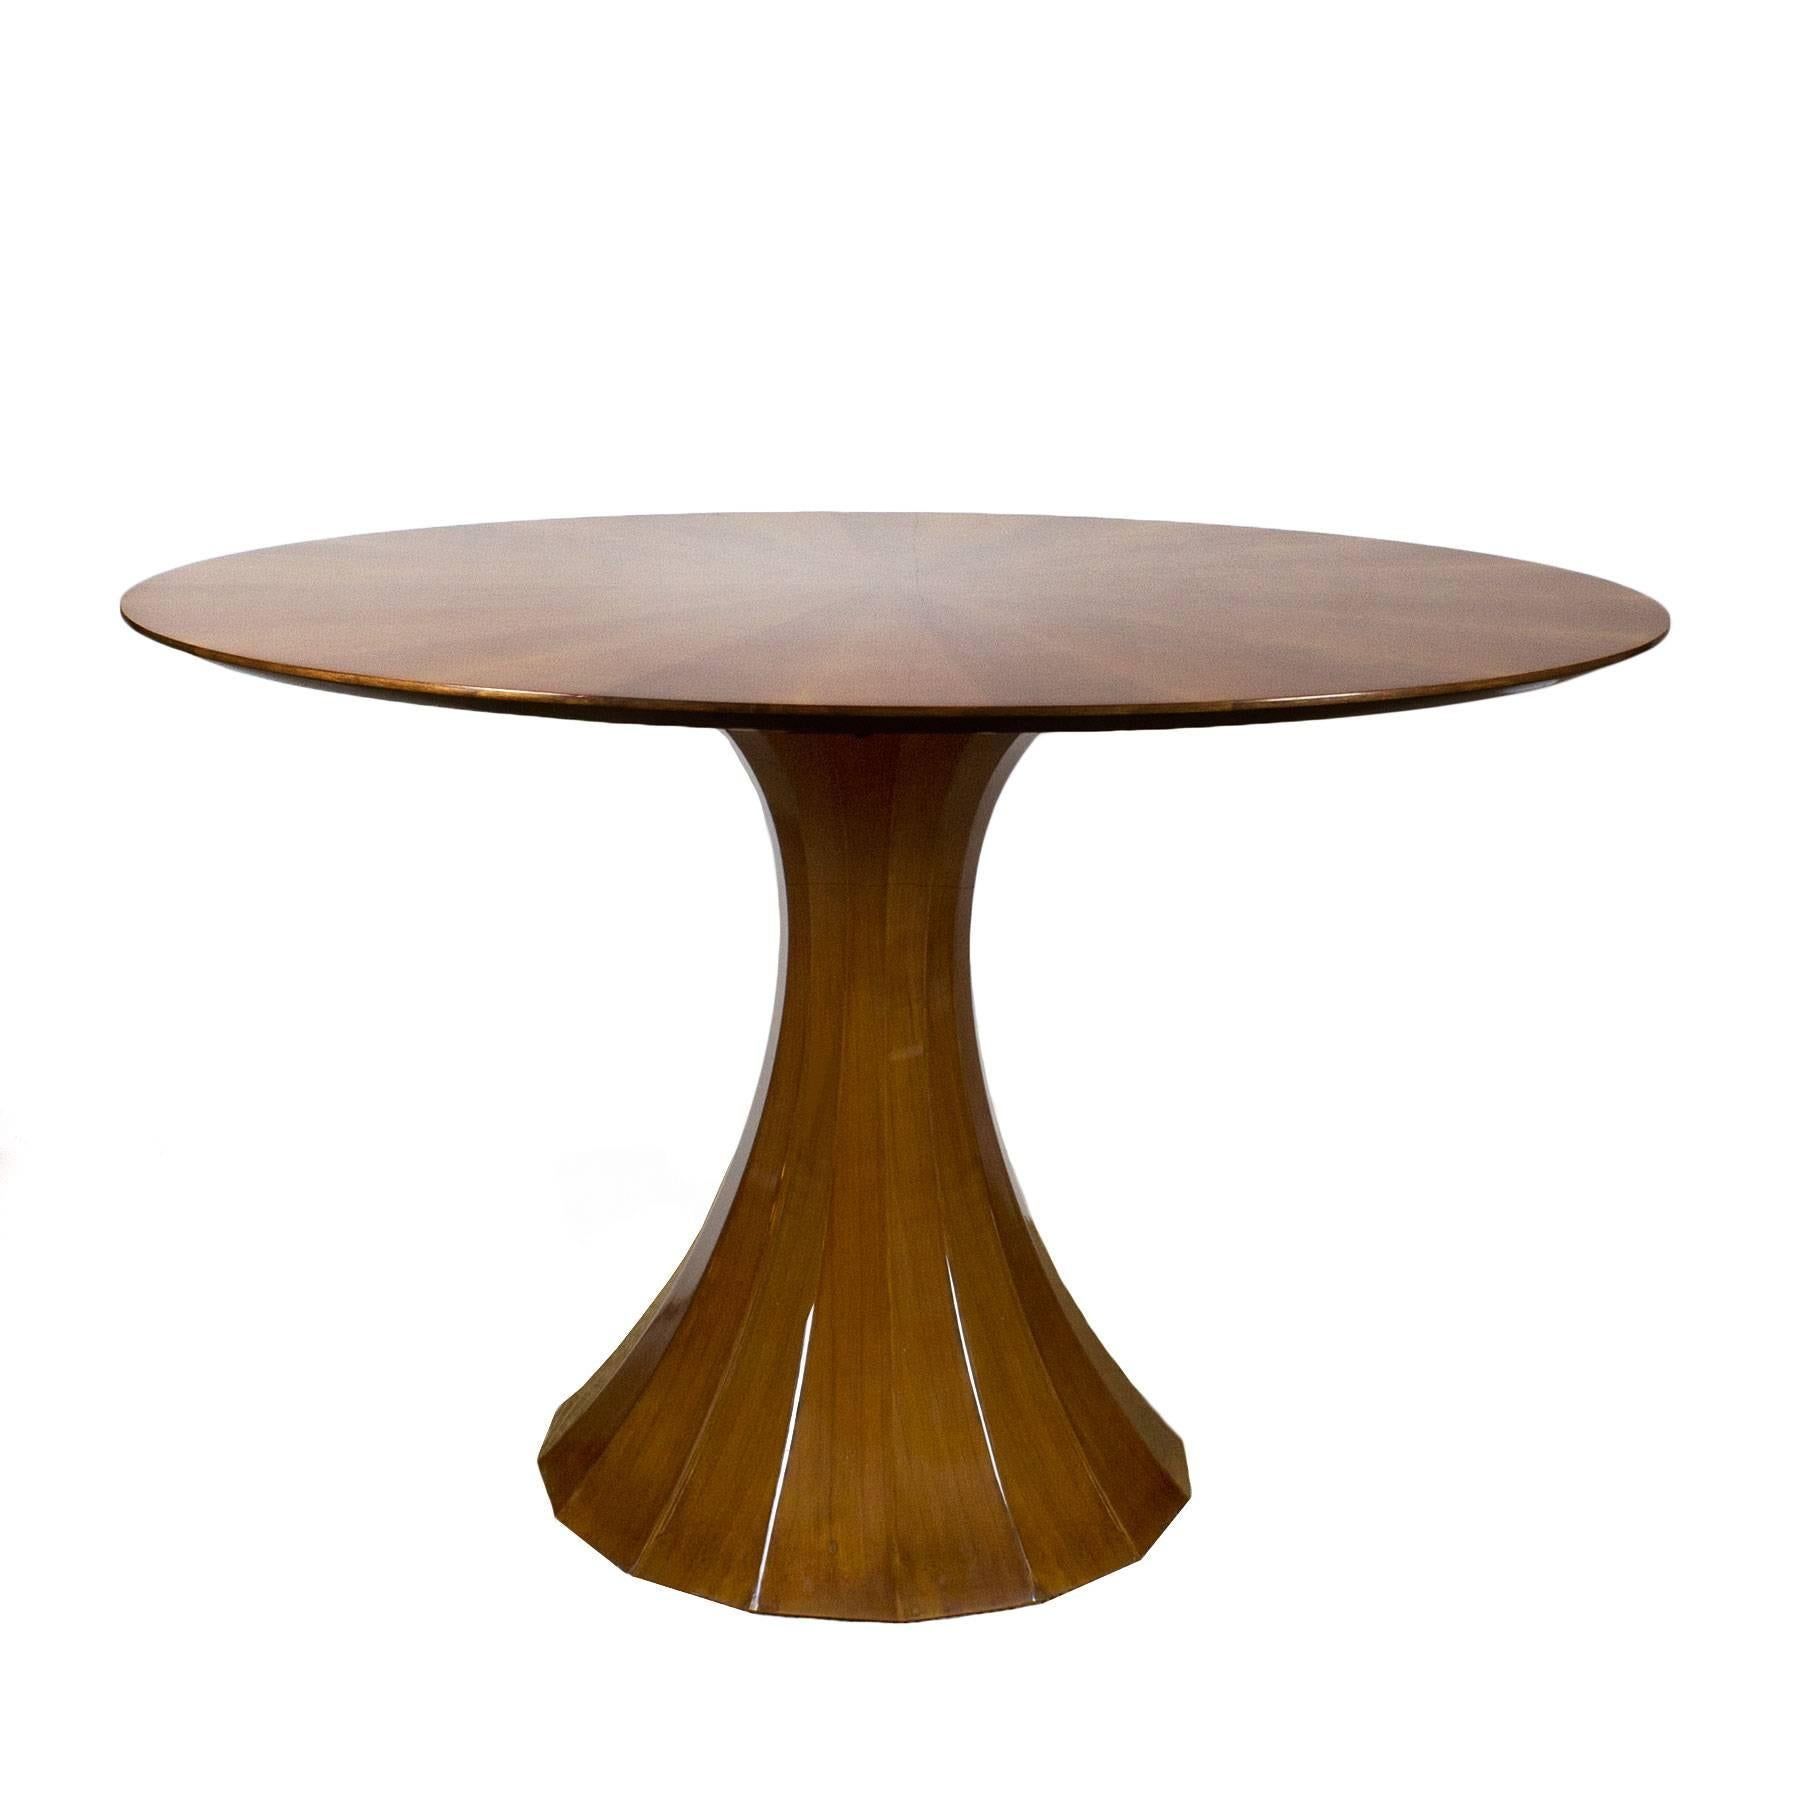 1960s Round Table, Polygonal Central Stand, Walnut Veneer, Italy